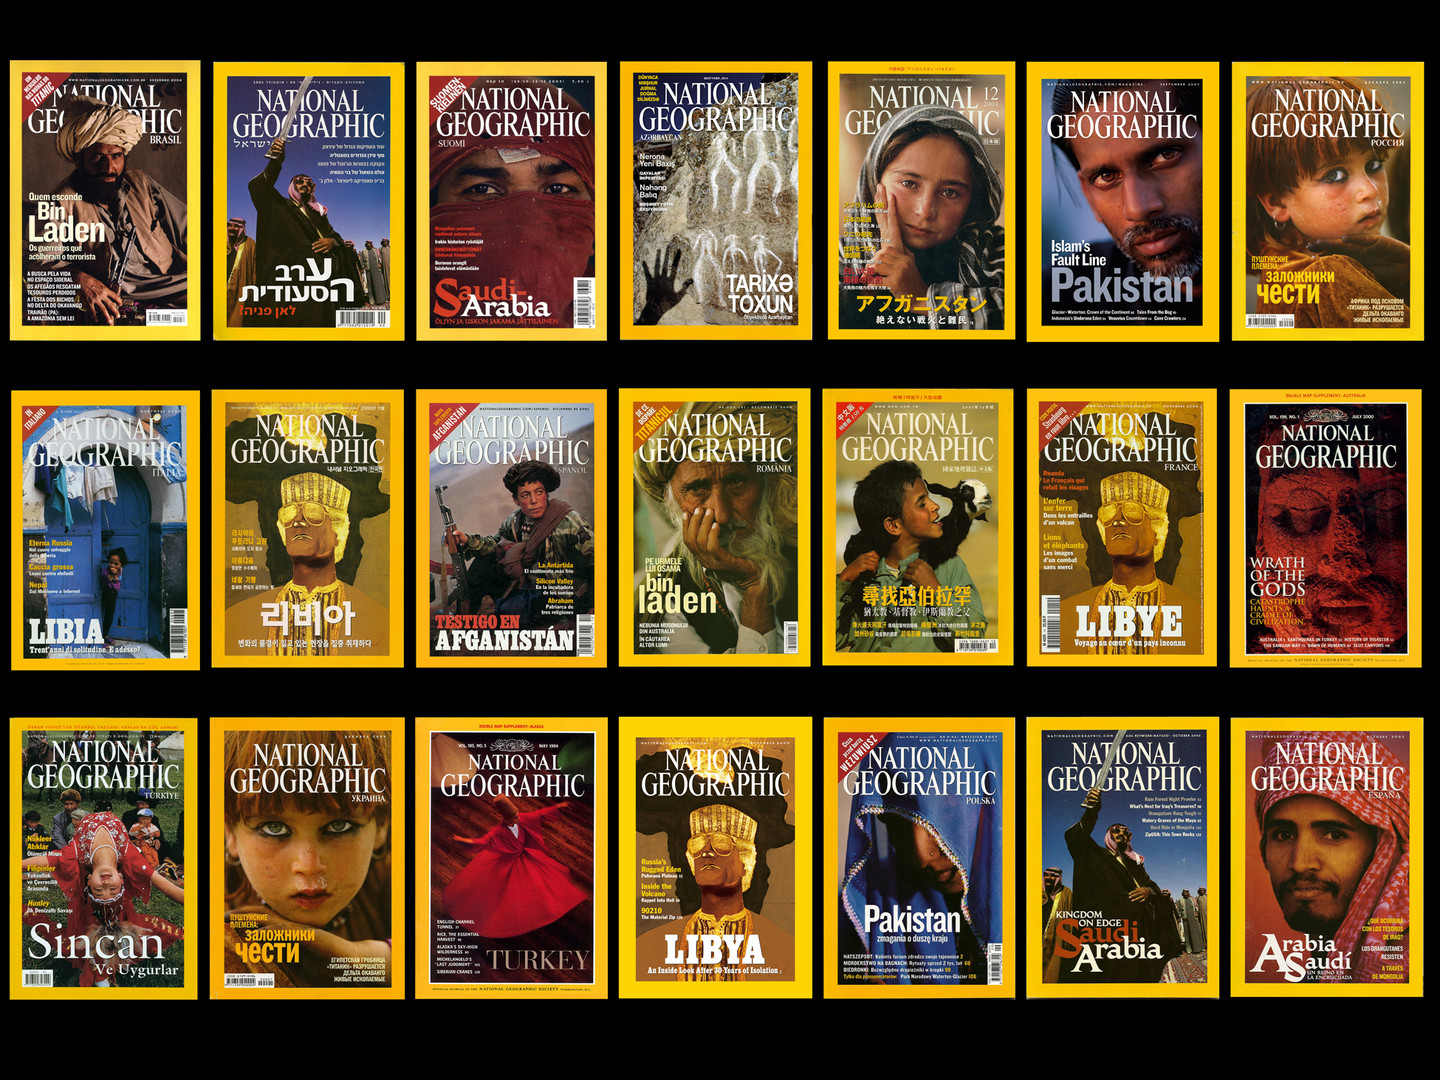 National Geographic Covers by Reza